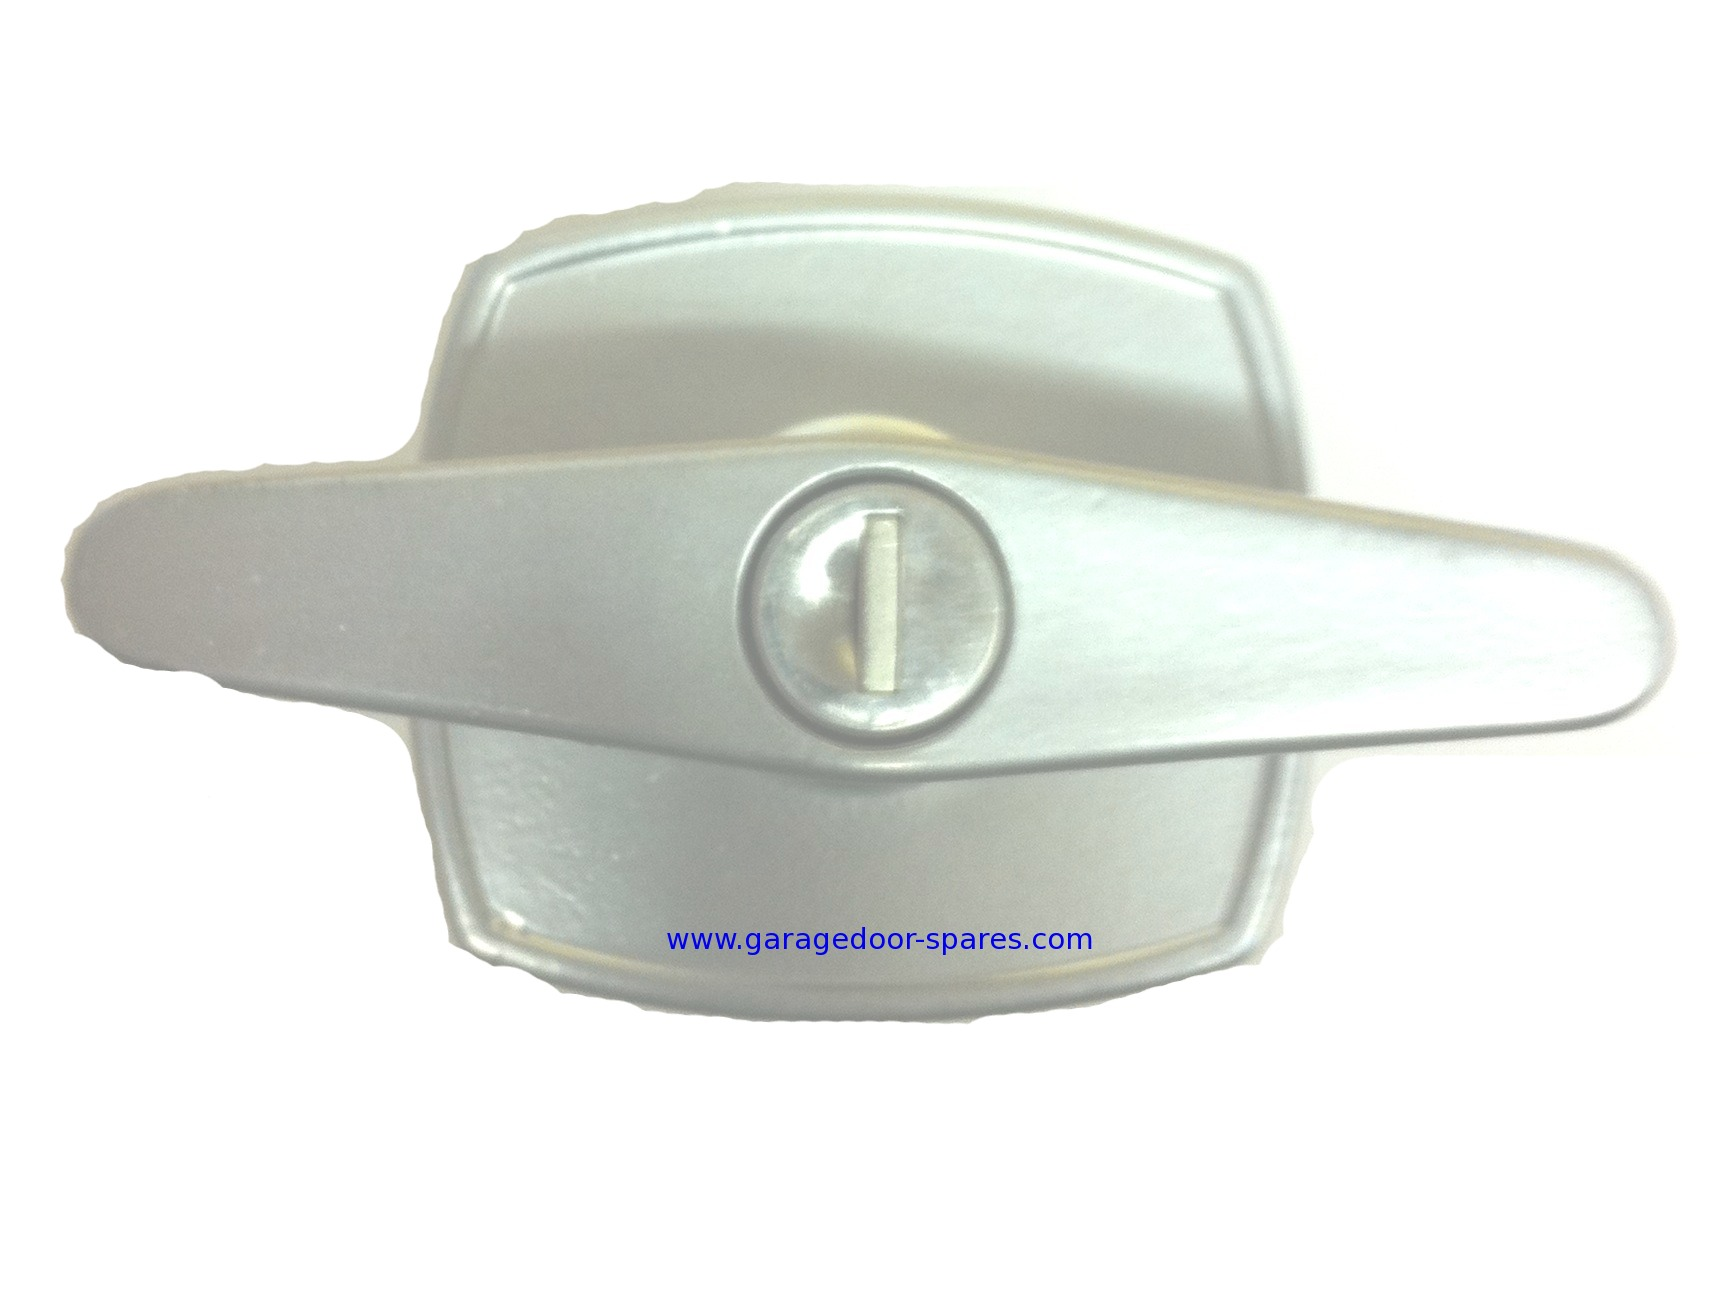 garage door handles garage design  Benevolently Garage Door Handle Lock Upstanding